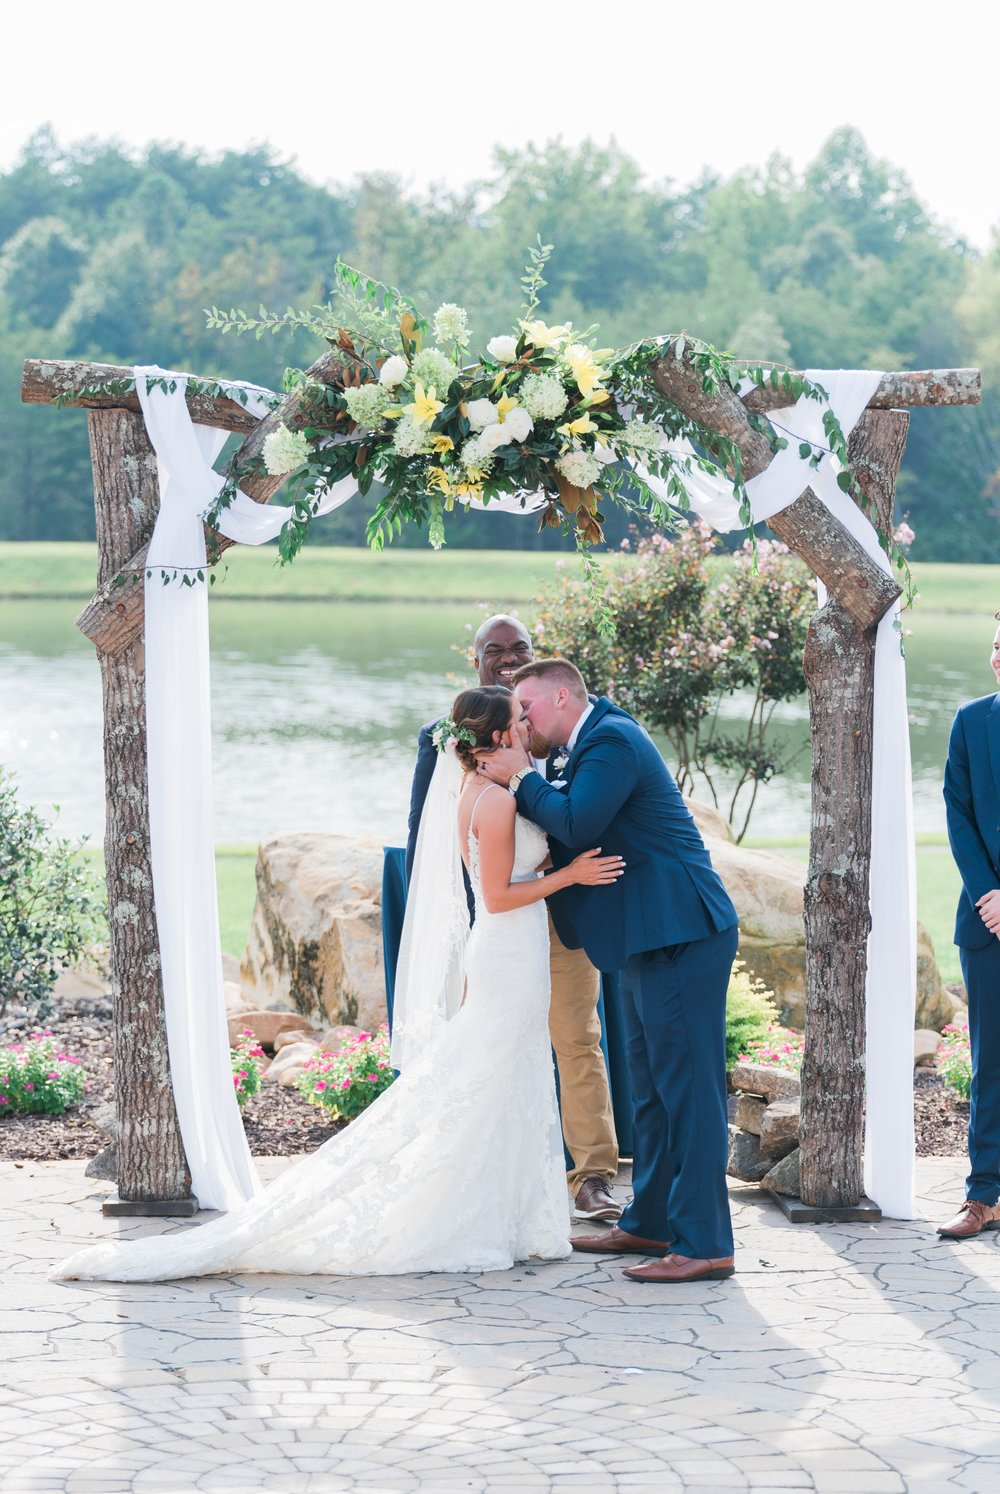 atkinson farms_VirginiaWeddingPhotographer_LynchburgWeddingPhotographer_DylanandLauren 10.jpg